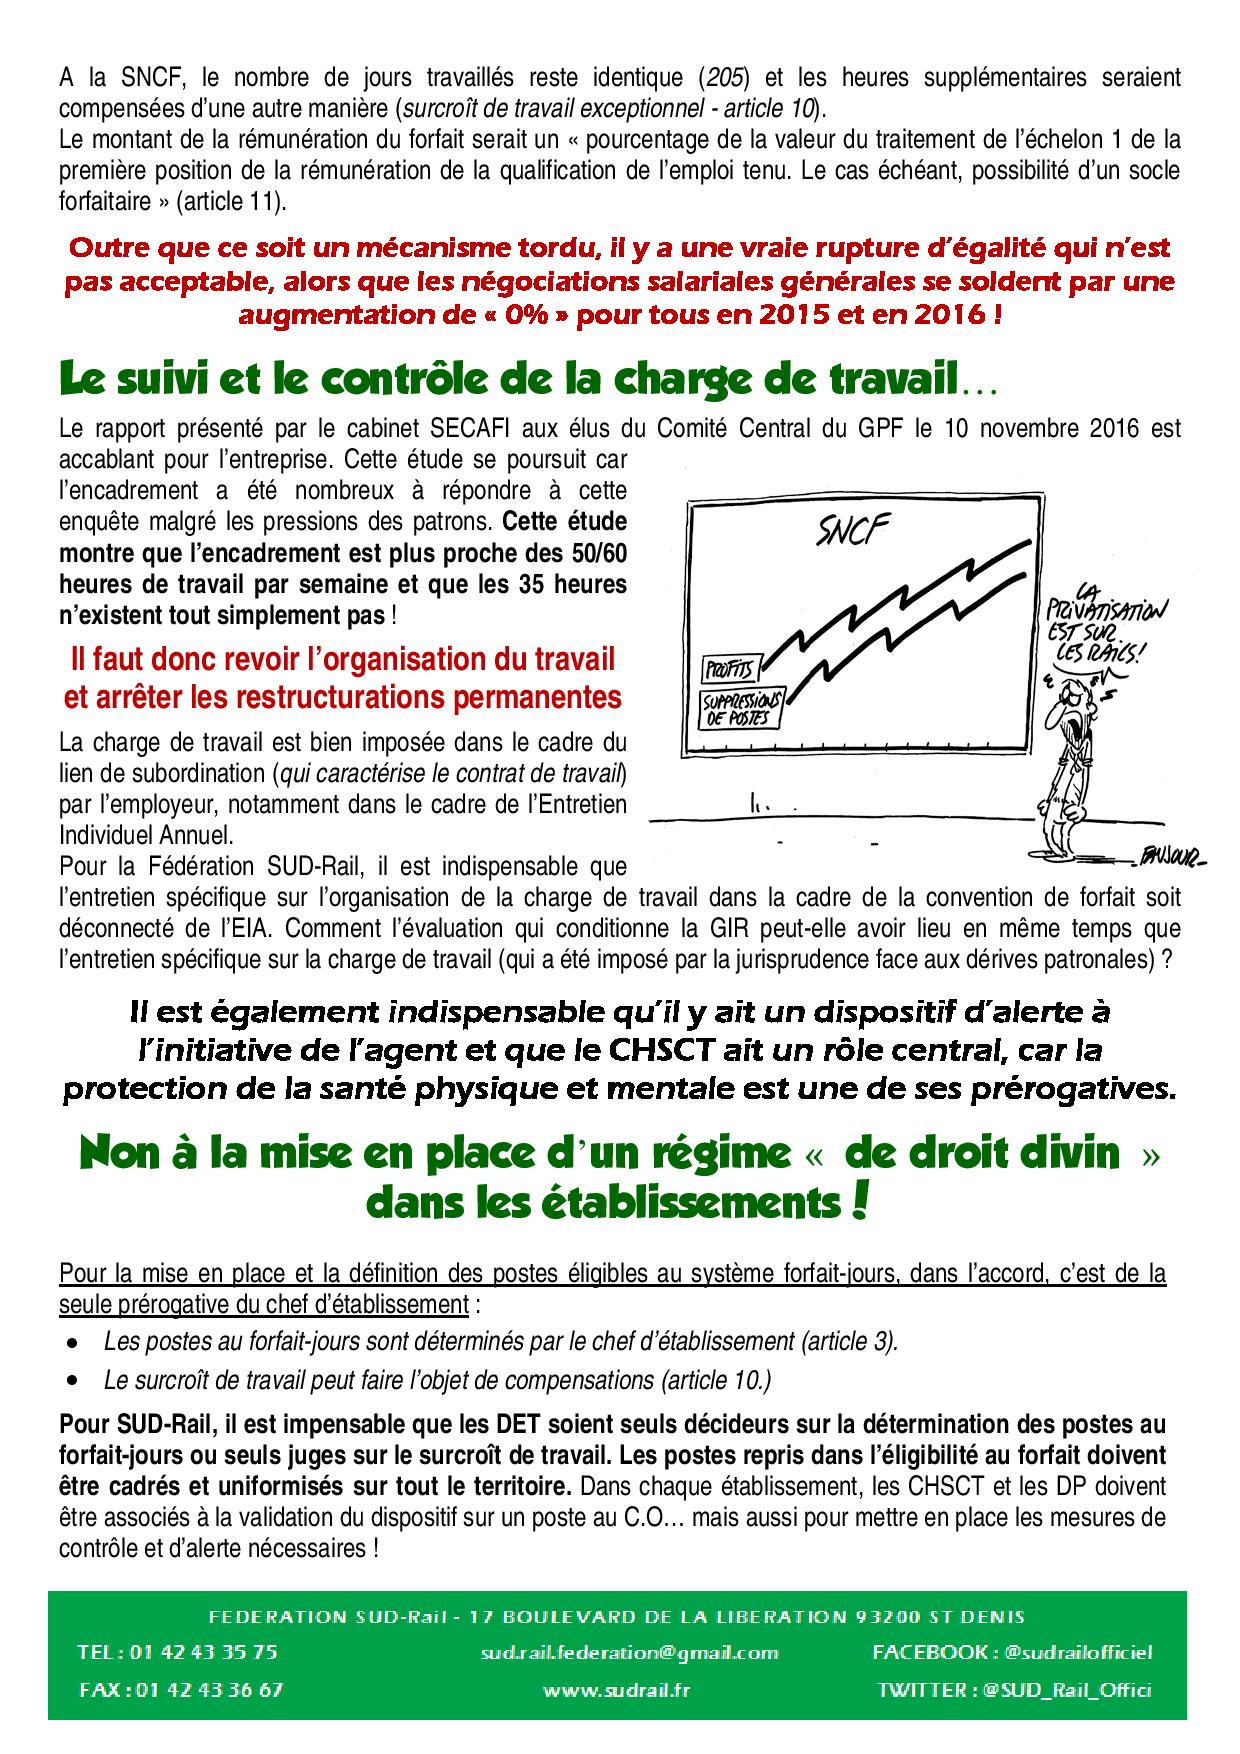 lne-forfaits-jours-11-2016-page-002